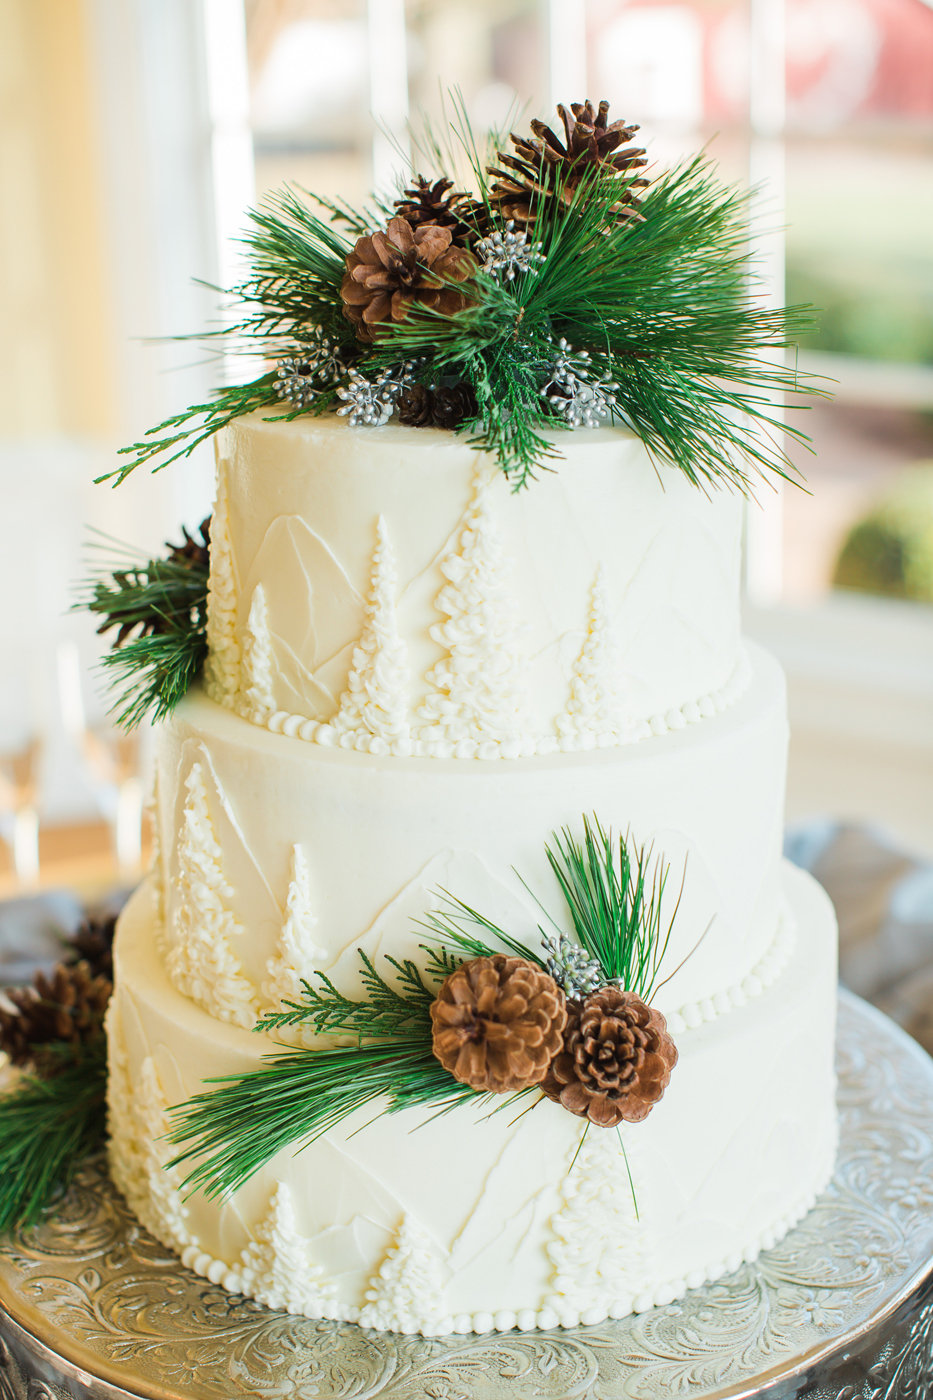 First This Lovely Winter Themed Cake Finished With Pine Cones And Snow Sparkles